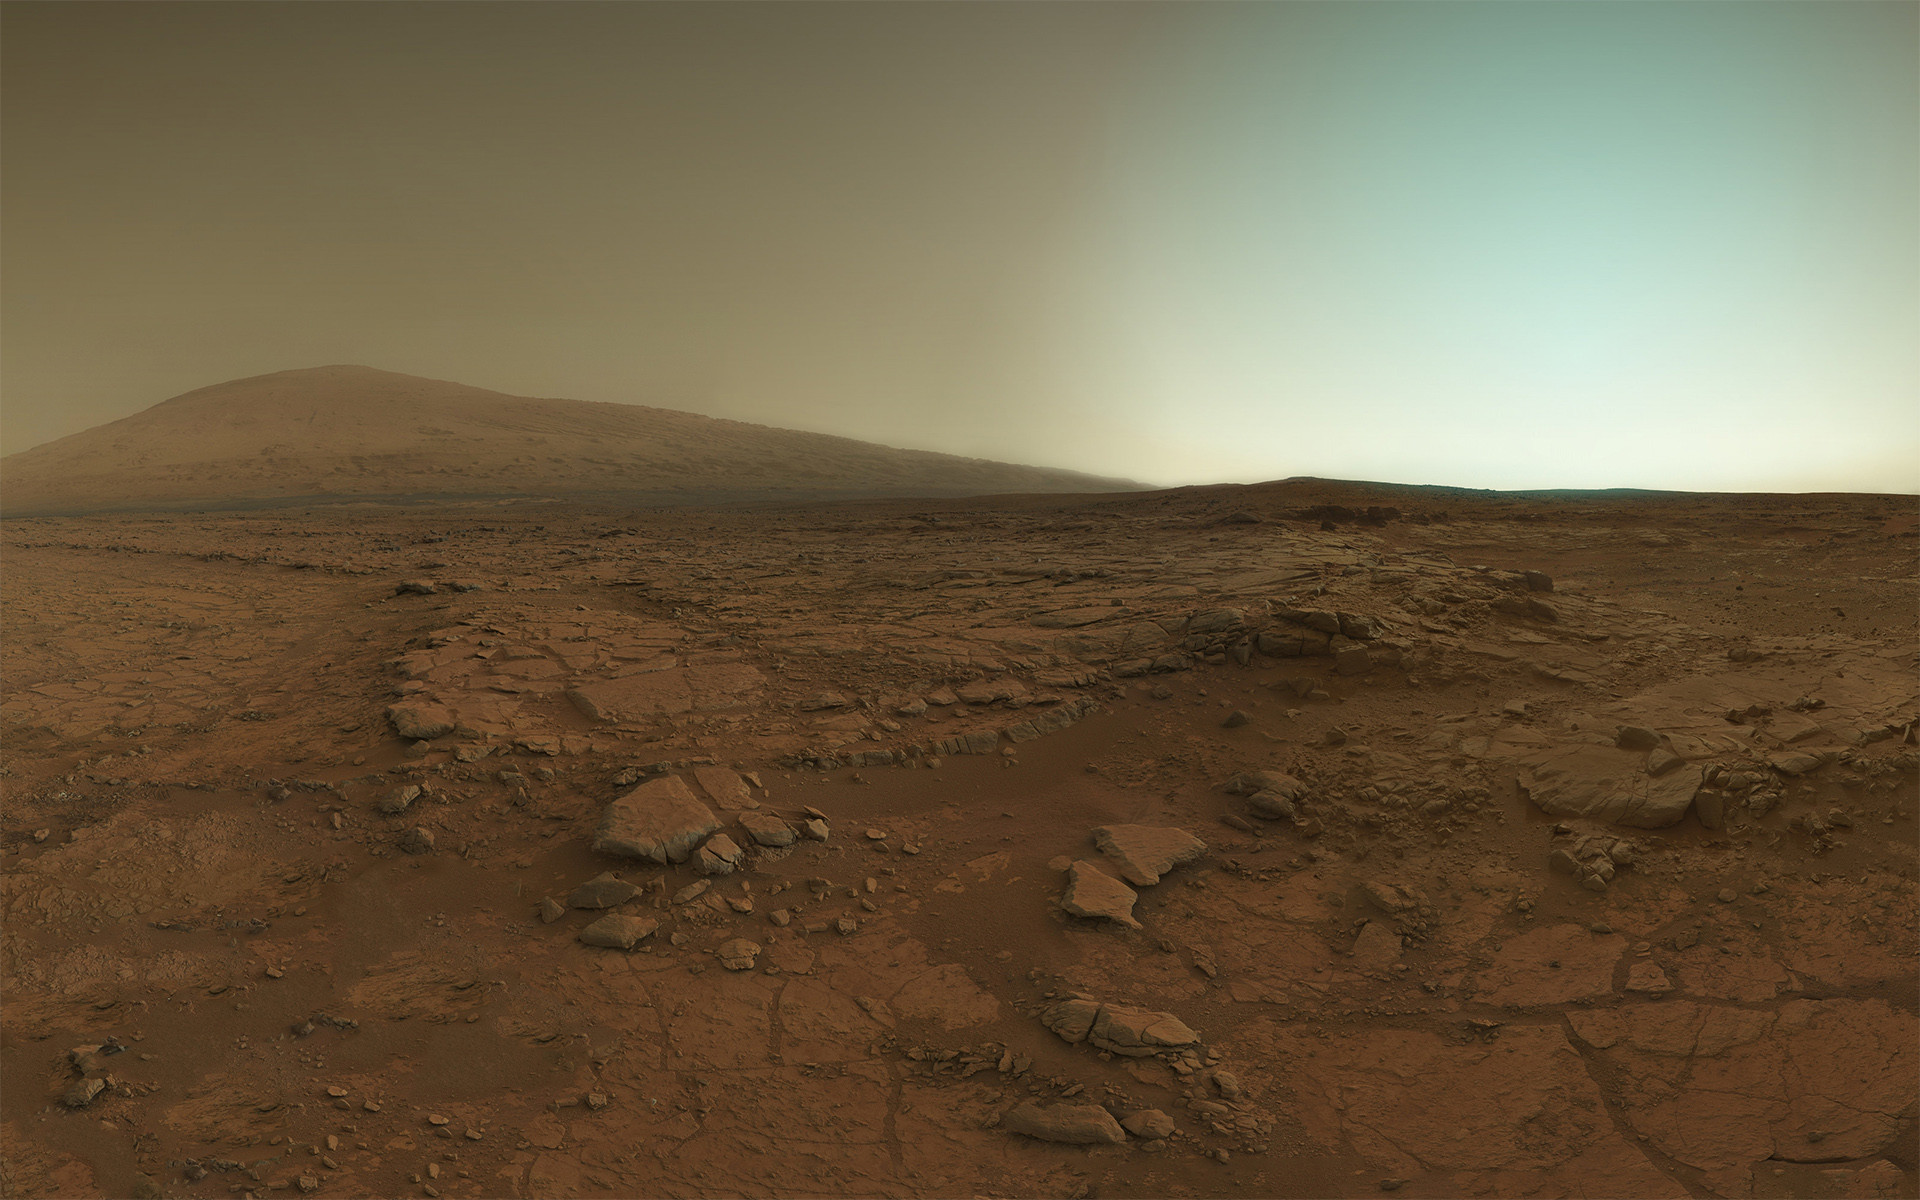 Res: 1920x1200, The surface of Mars, as seen by the Curiosity Rover.